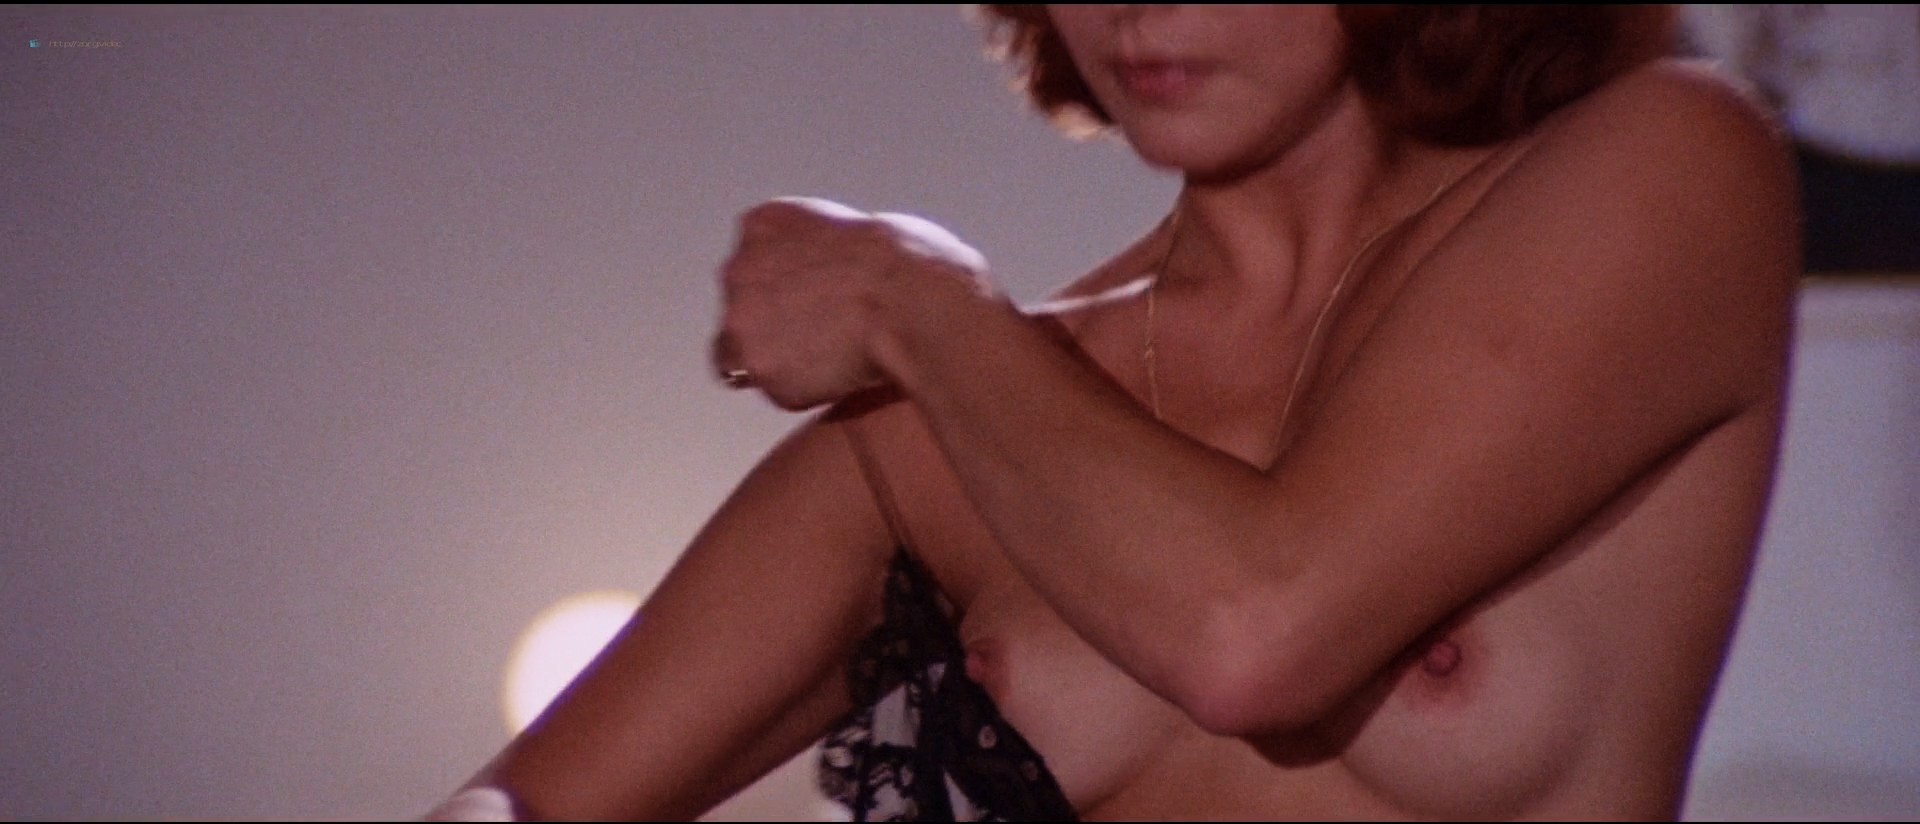 Martine Brochard nude Mirta Miller, Ines Pellegrini nude too - Eyeball (IT-1975) 1080p BluRay (12)